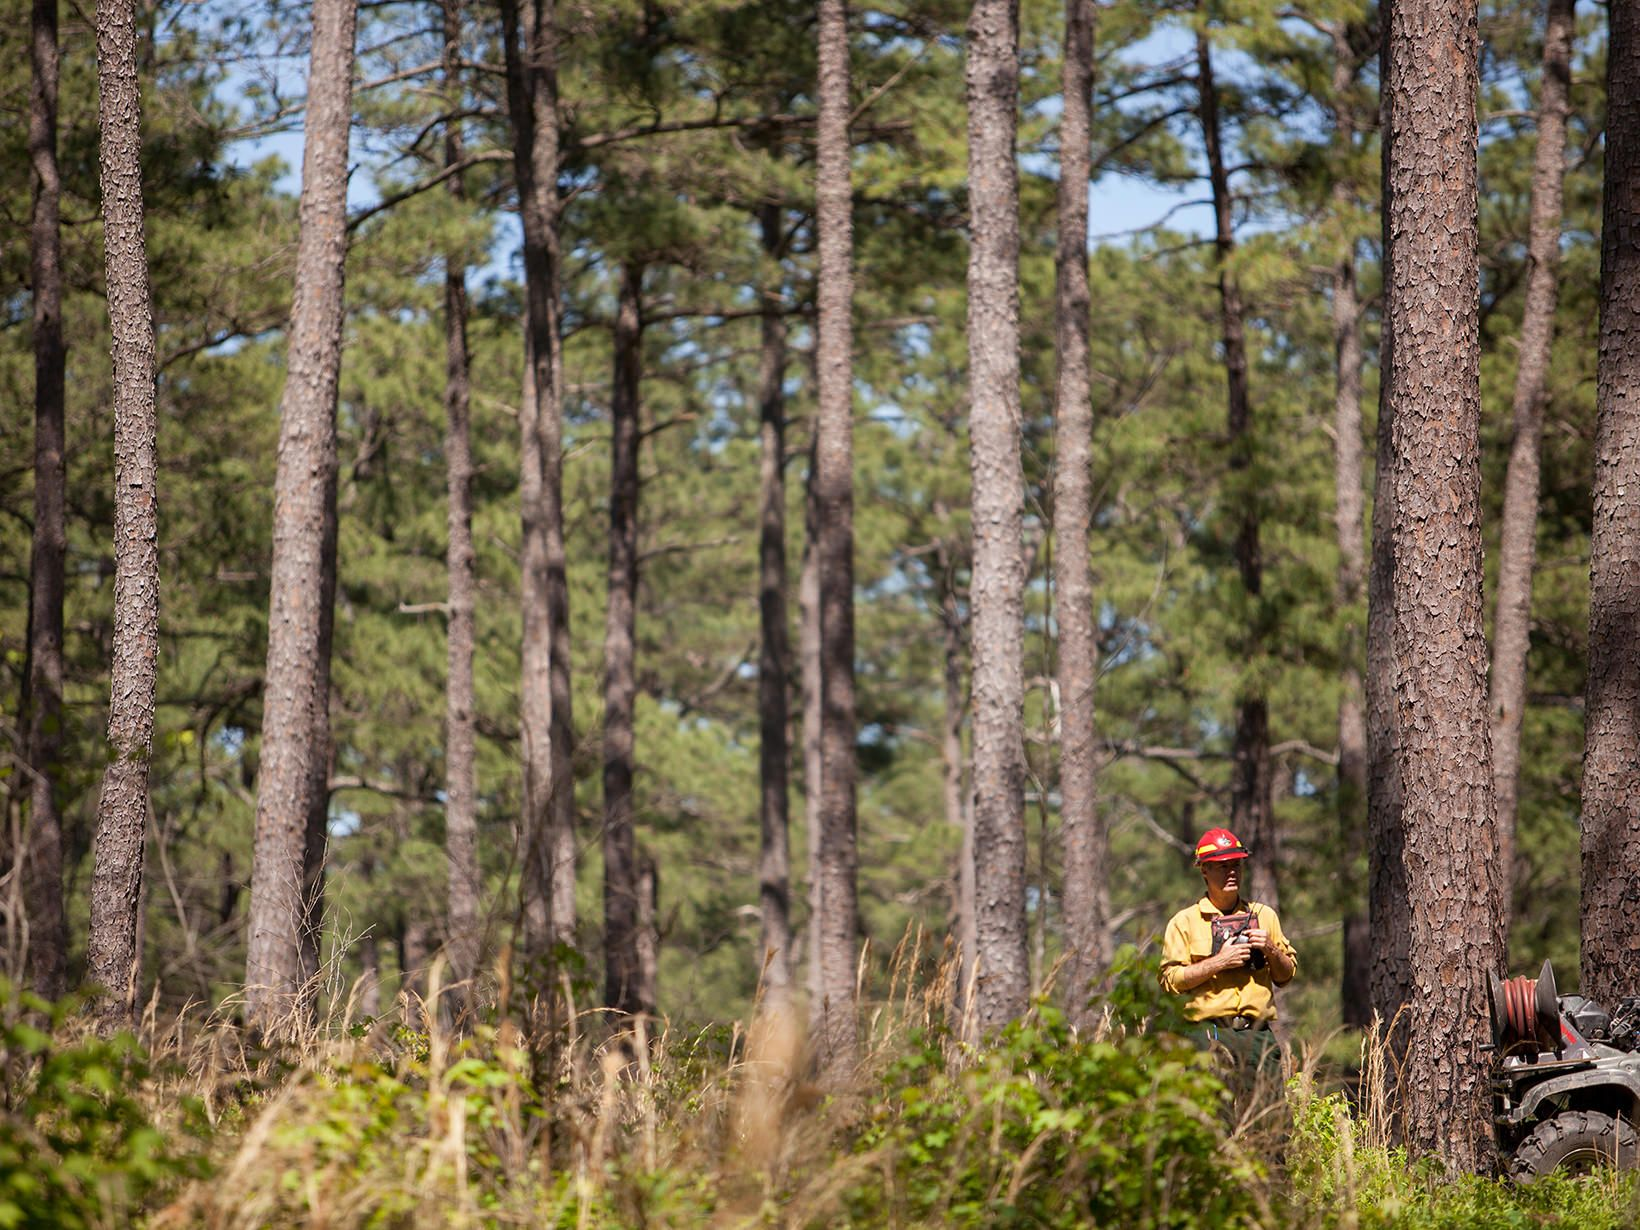 A man in a yellow shirt and red hard hat stands outside holding a walkie-talkie. He is dwarfed by the tall pine trees that rise around him.